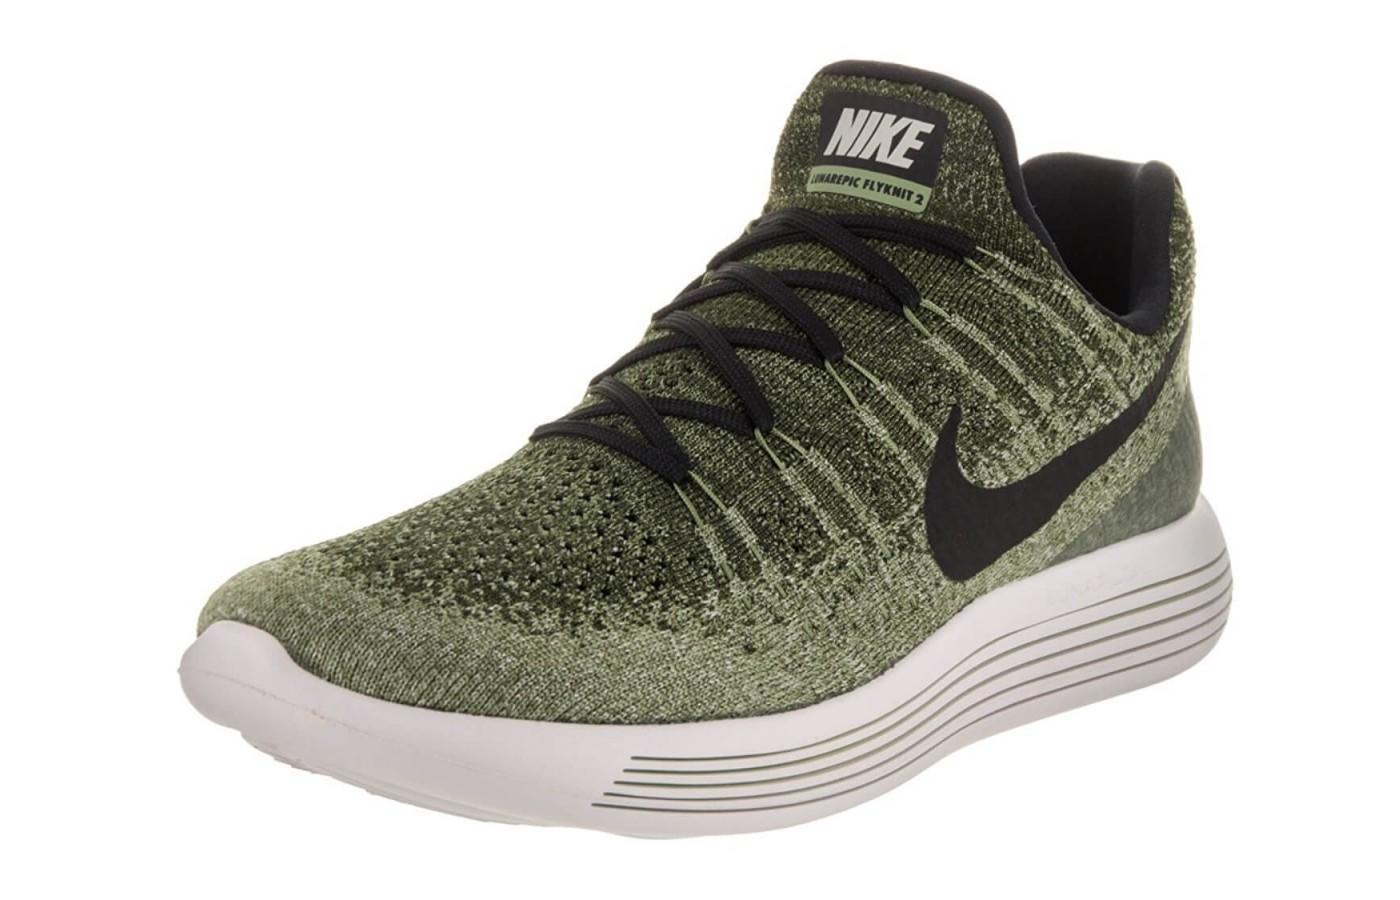 4e2020bef1d59 Nike LunarEpic Low Flyknit 2 - Buy or Not in May 2019